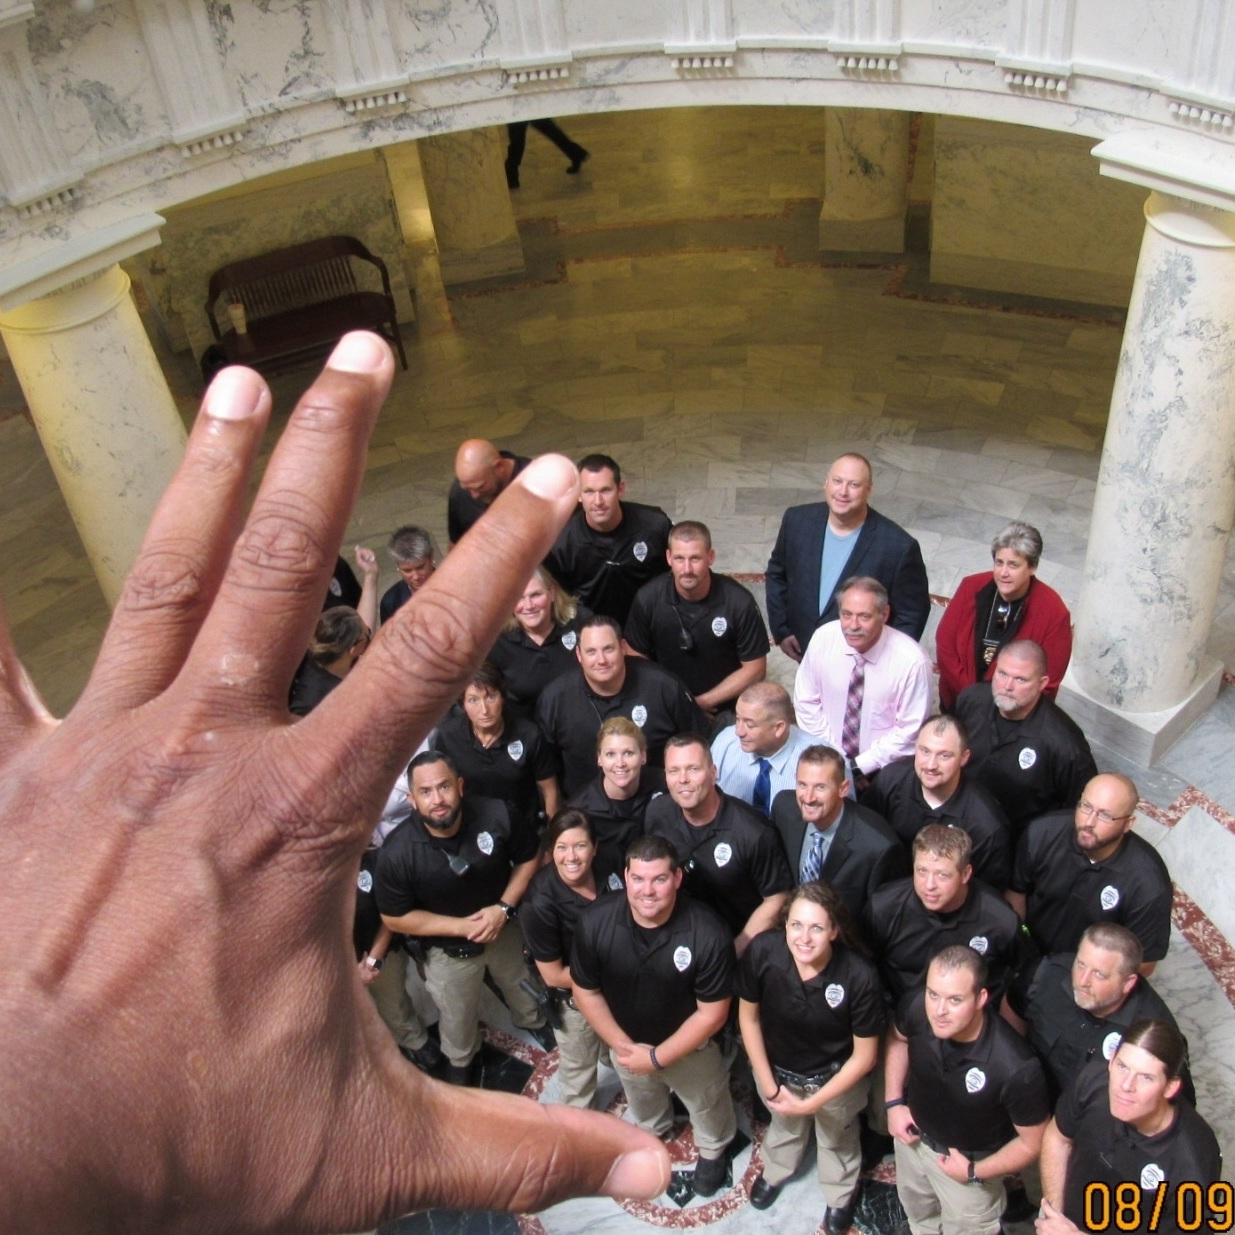 Idaho - In Boise, I happened to encounter every parole officer for the state as they were getting ready to be sworn in for duty.